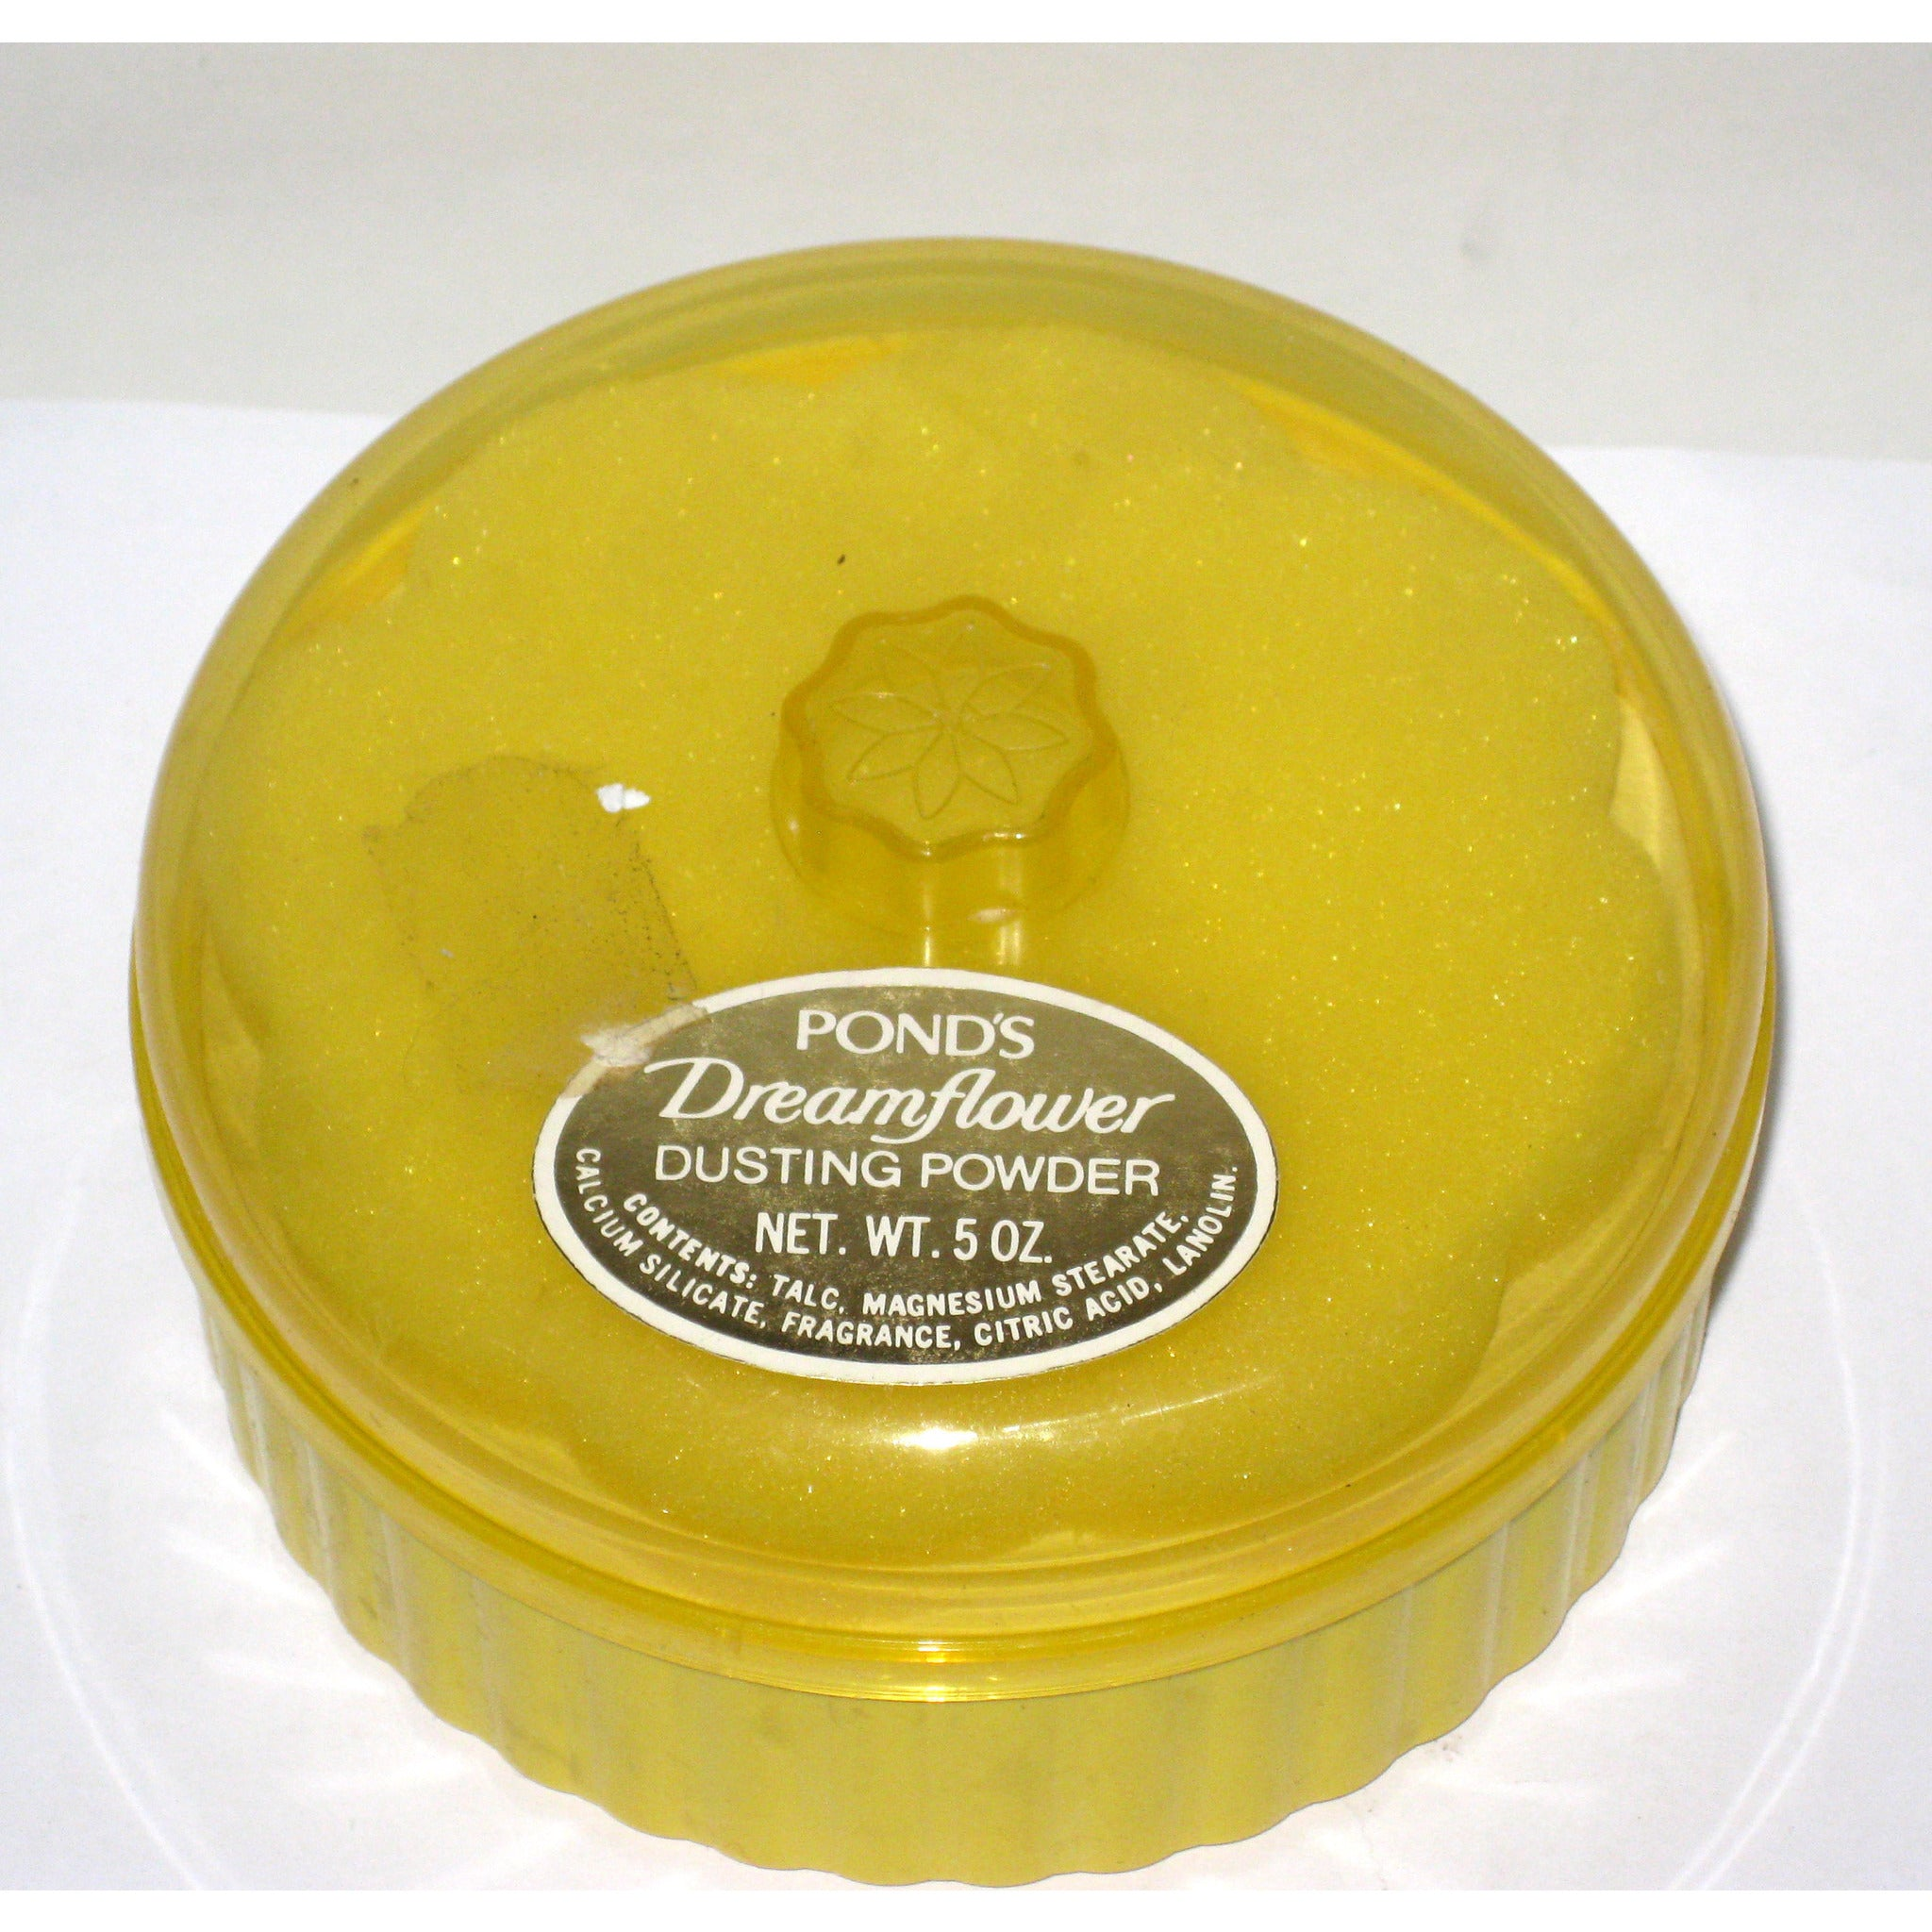 Vintage Dreamflower Dusting Powder By Ponds